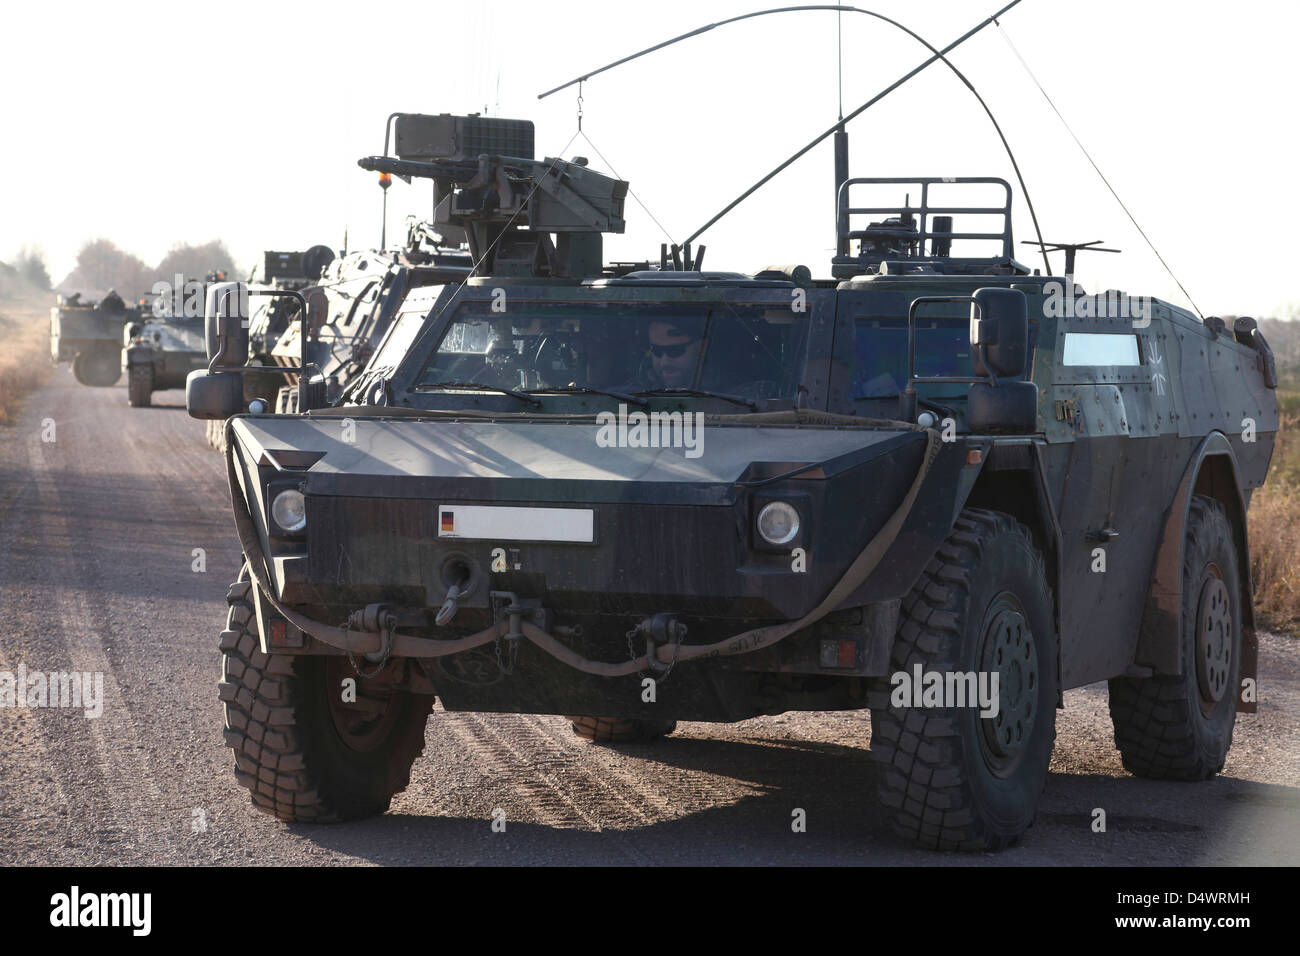 Fennek armored reconnaissancd vehicles of the German Army. - Stock Image